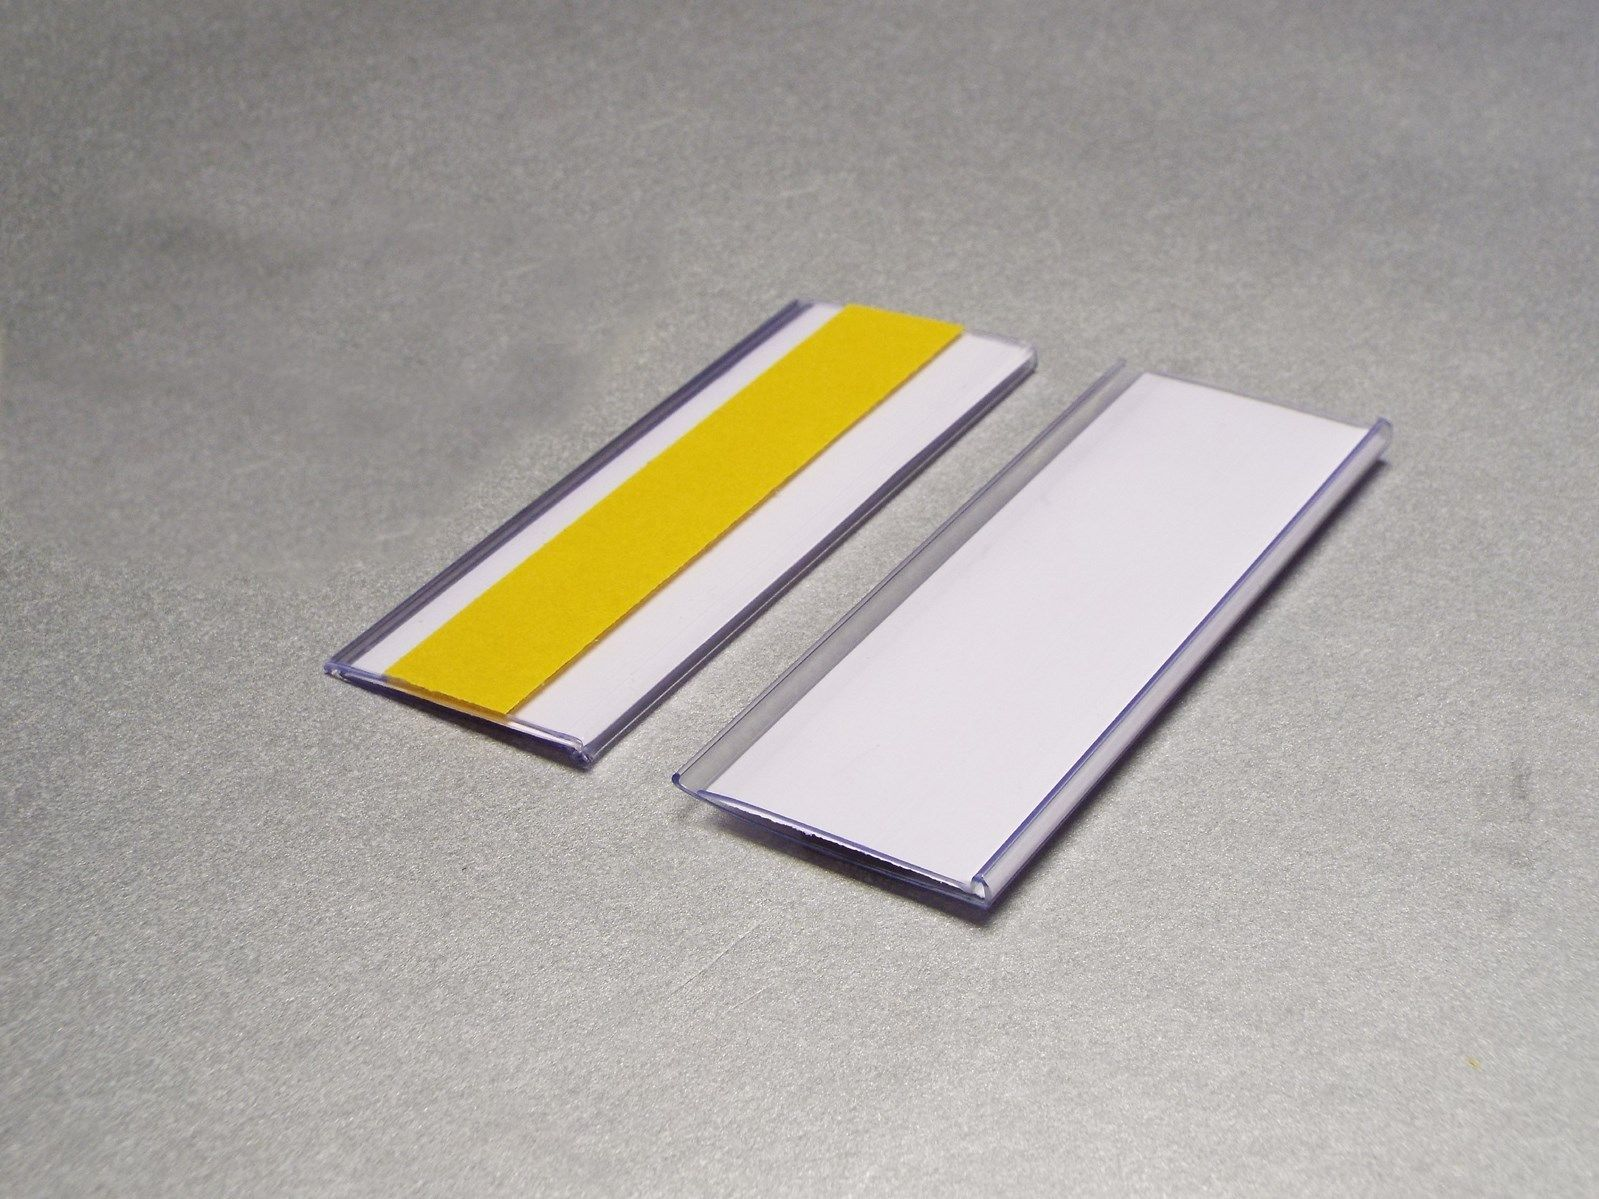 Self-Adhesive Ticket Holders 38mm high x 100mm long EPOS Strips Pack of 100